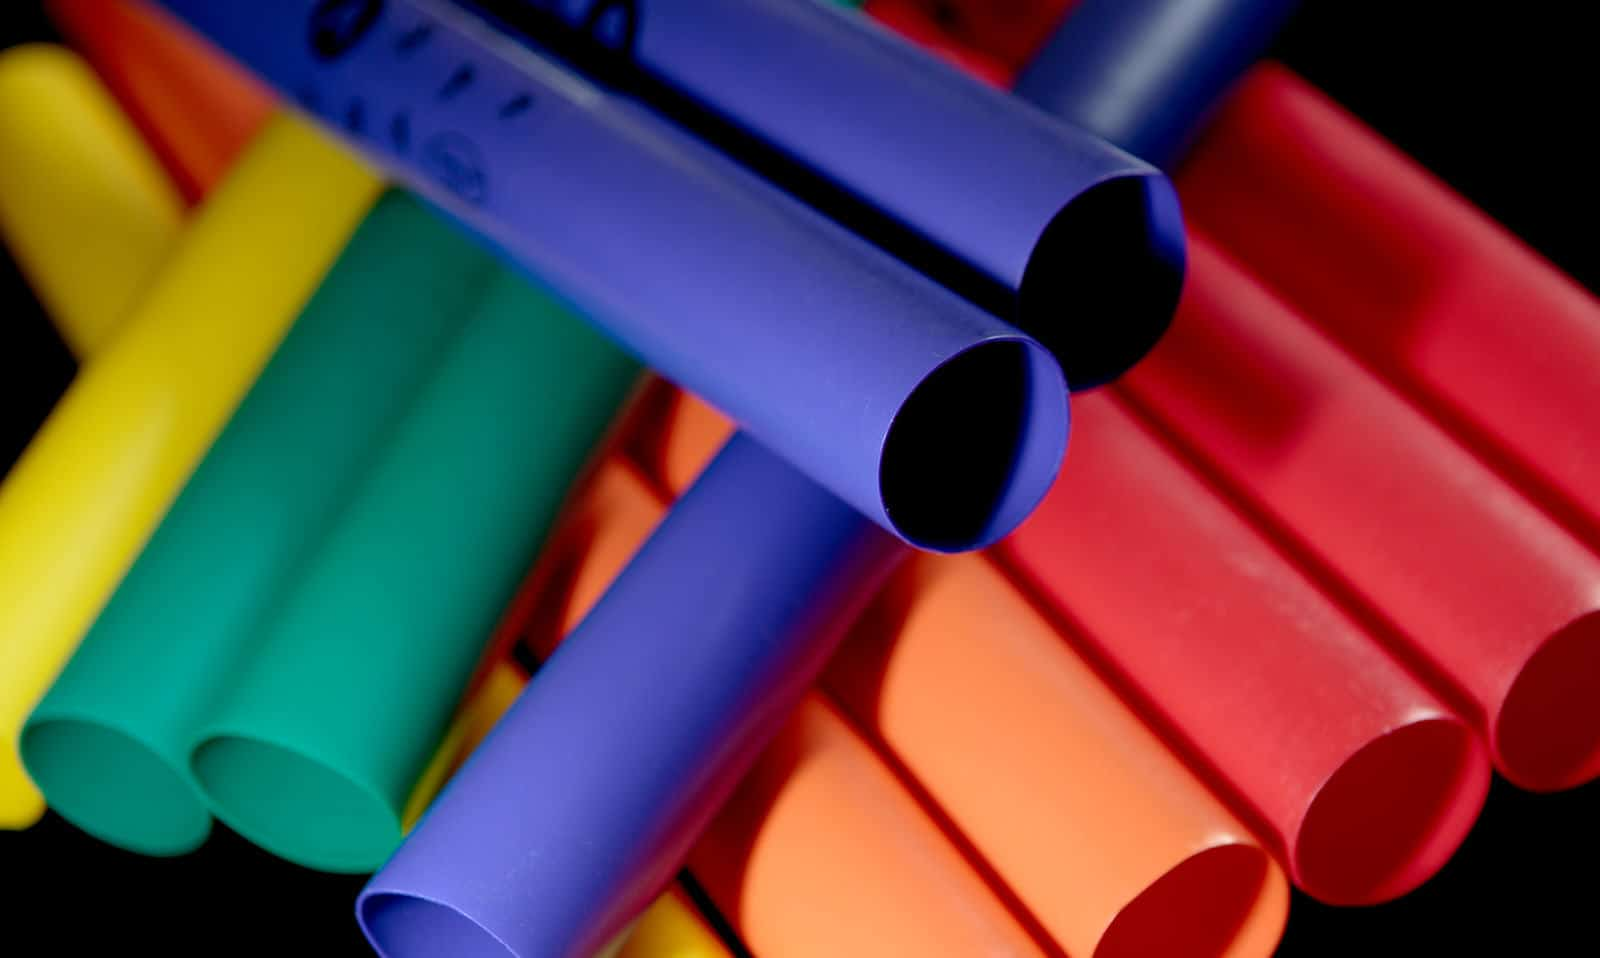 Boomwhackers for large team building